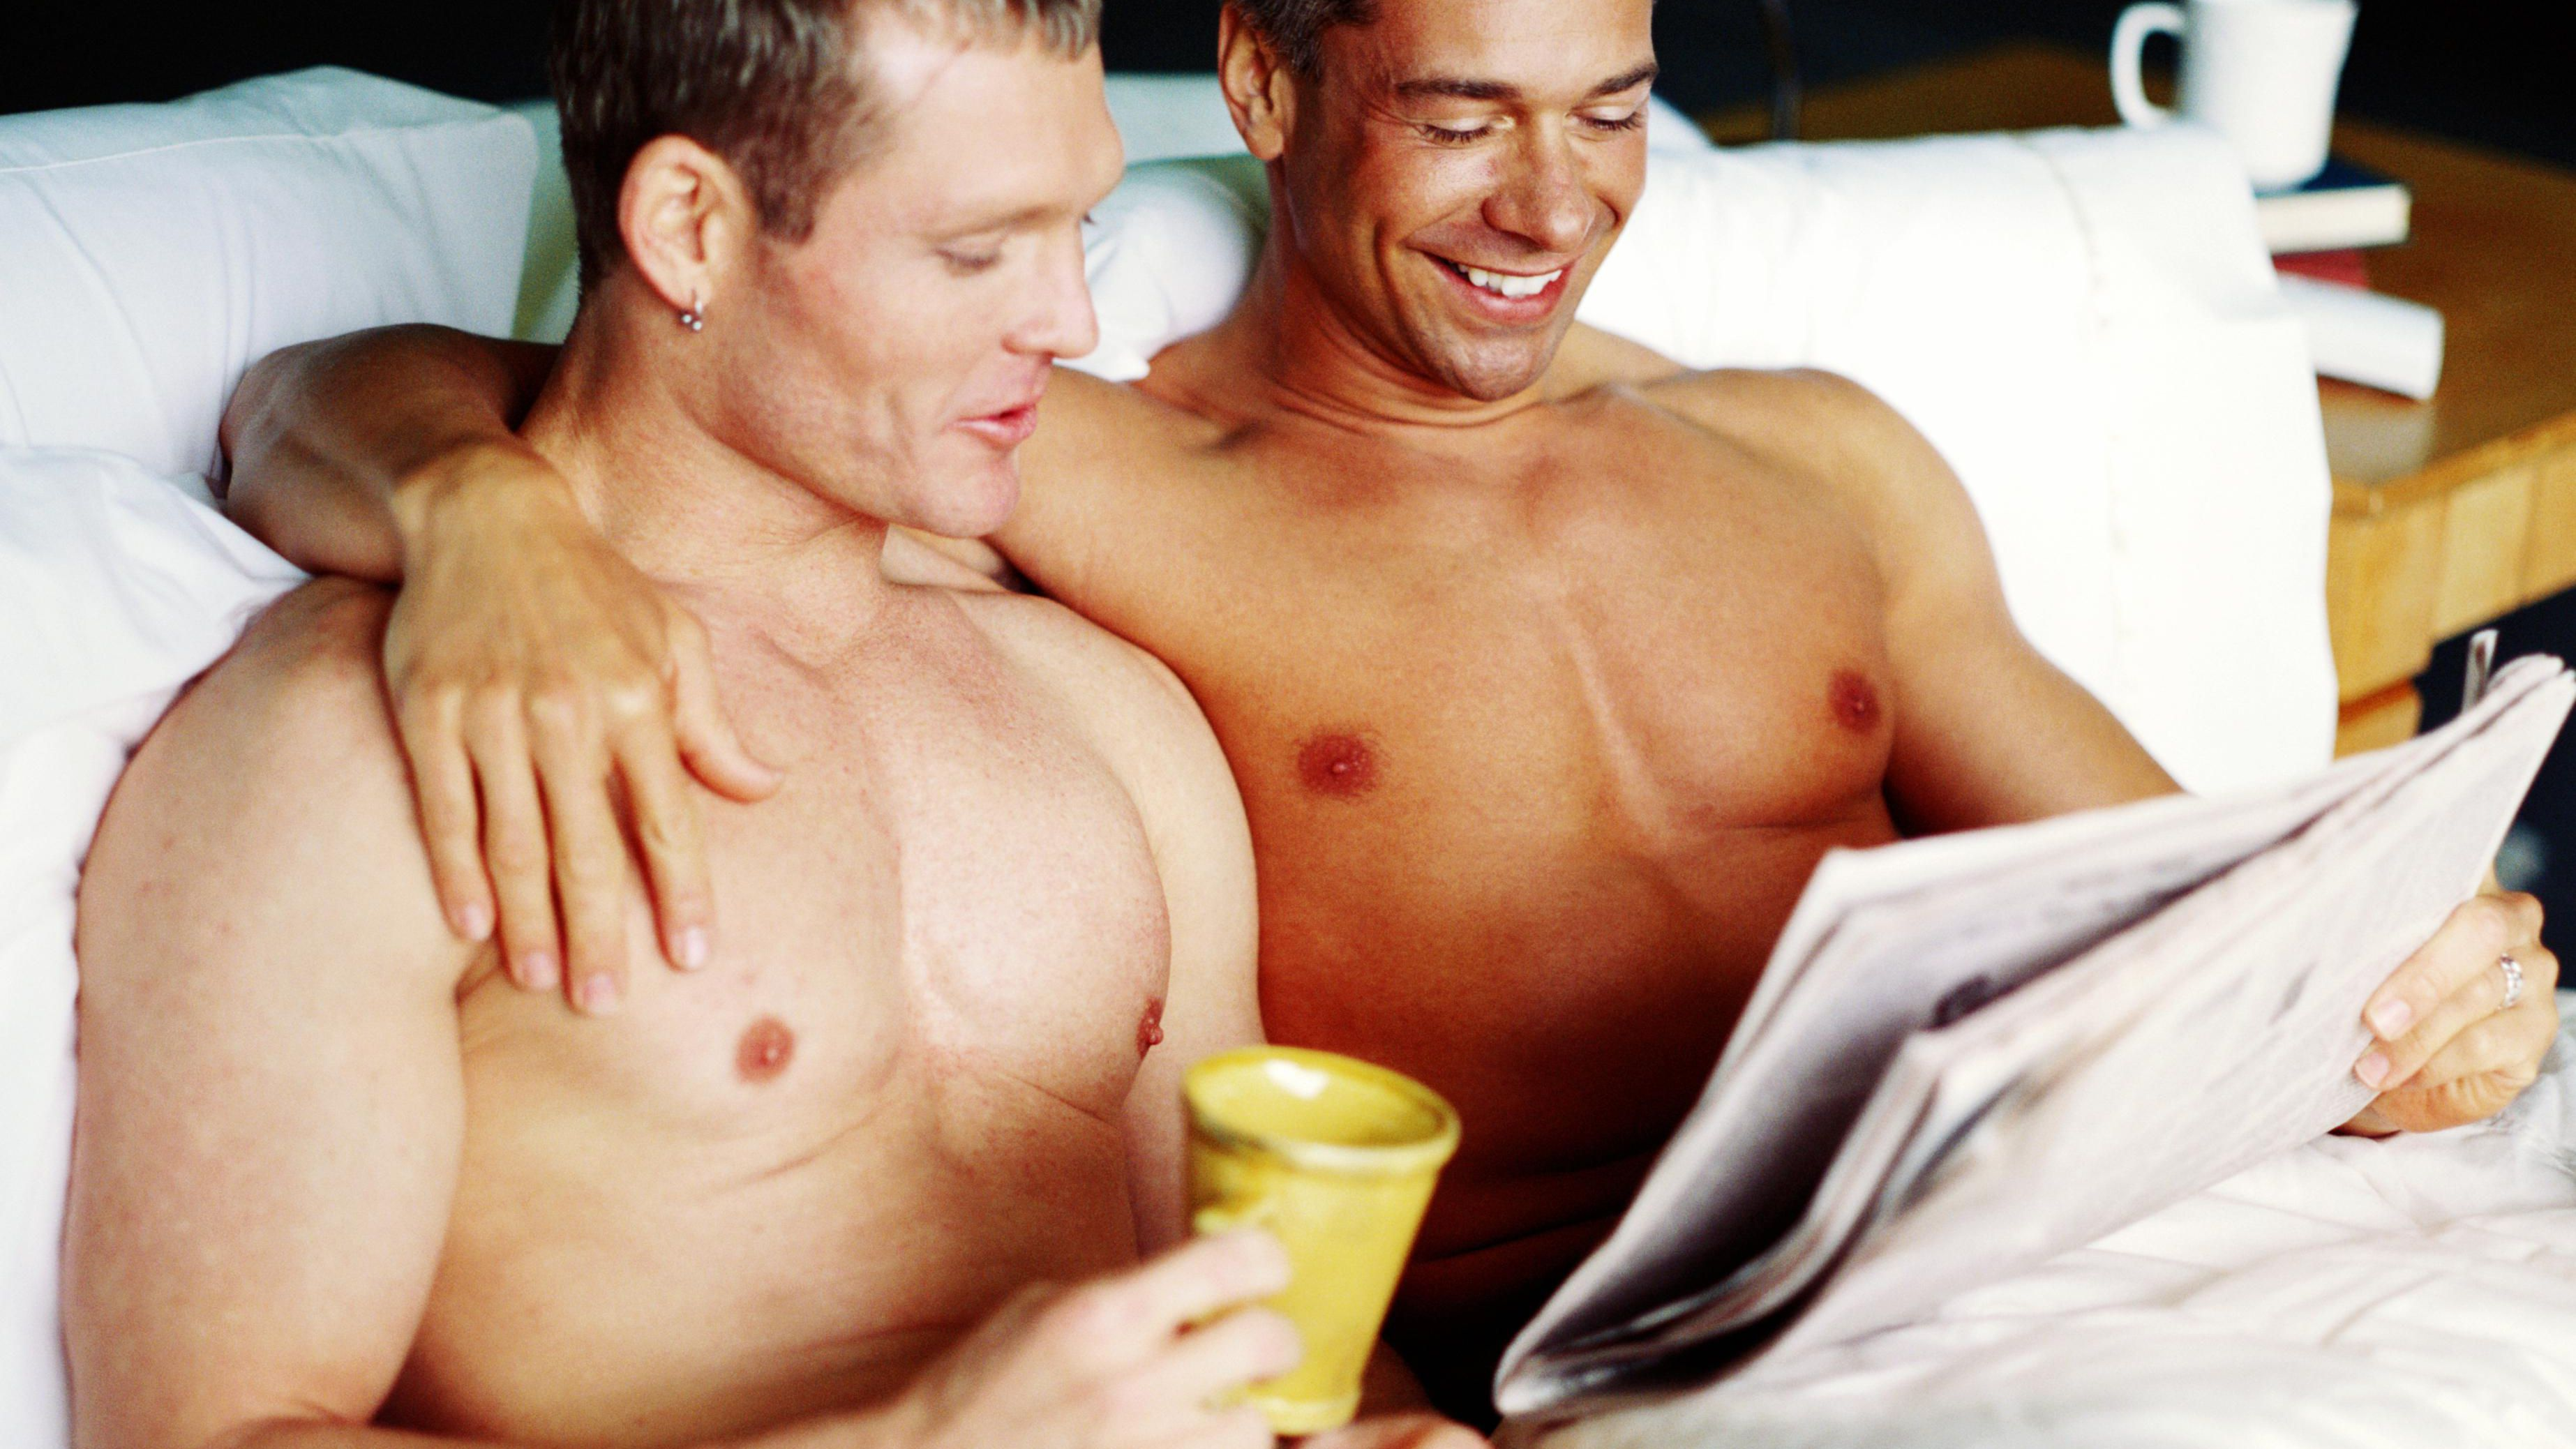 Gay Online Dating Ireland Personals - Vivastreet